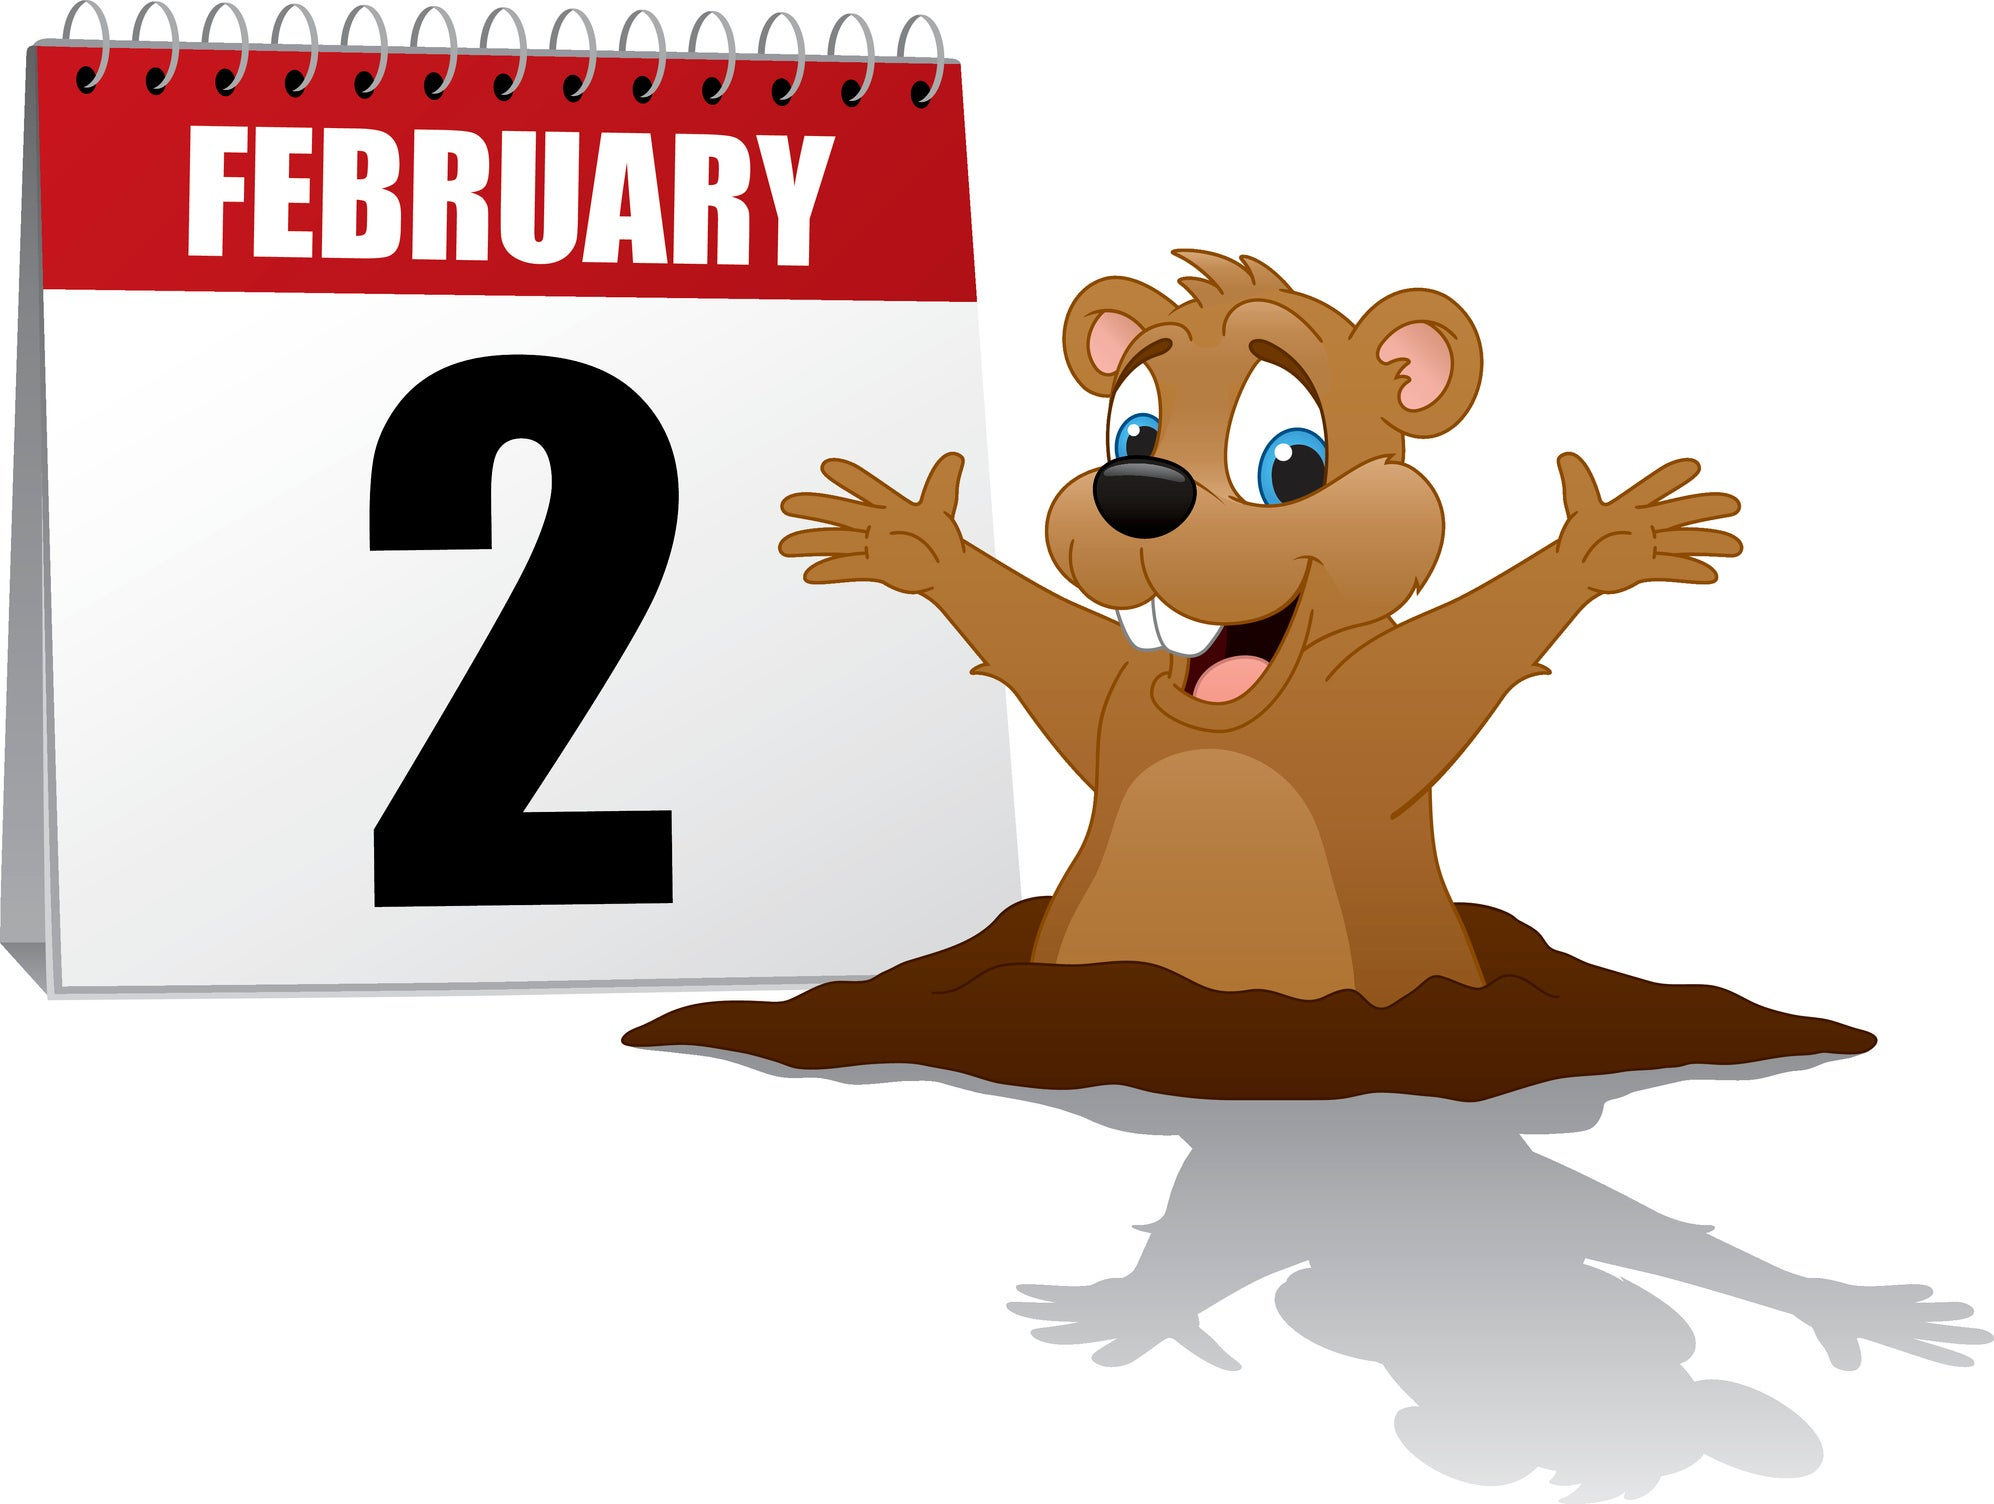 ground hog day - don't repeat past financial mistakes